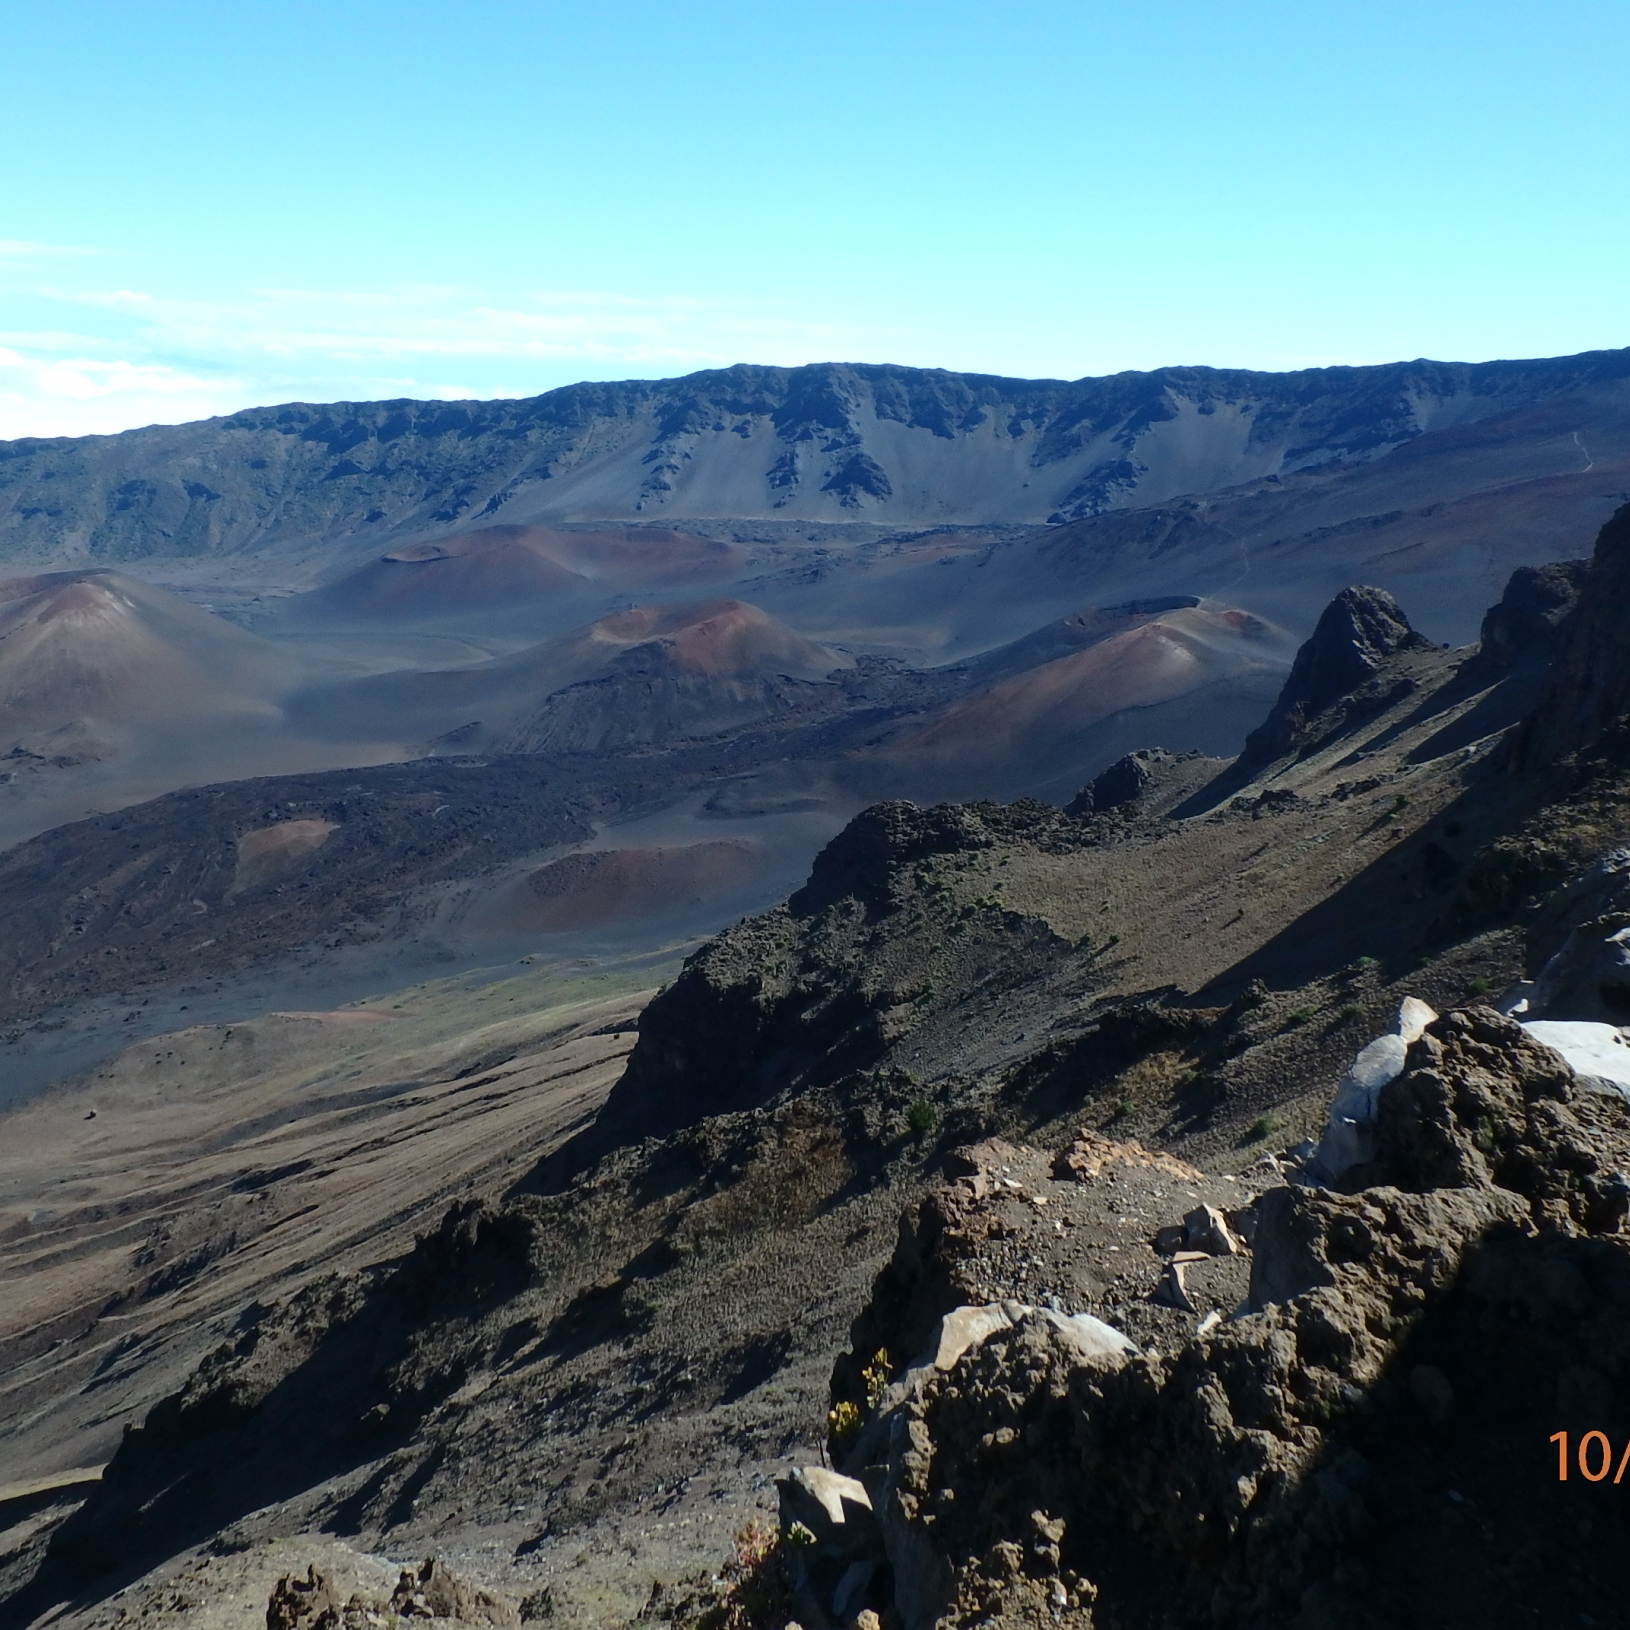 The crater at Haleakala National Park, 2016